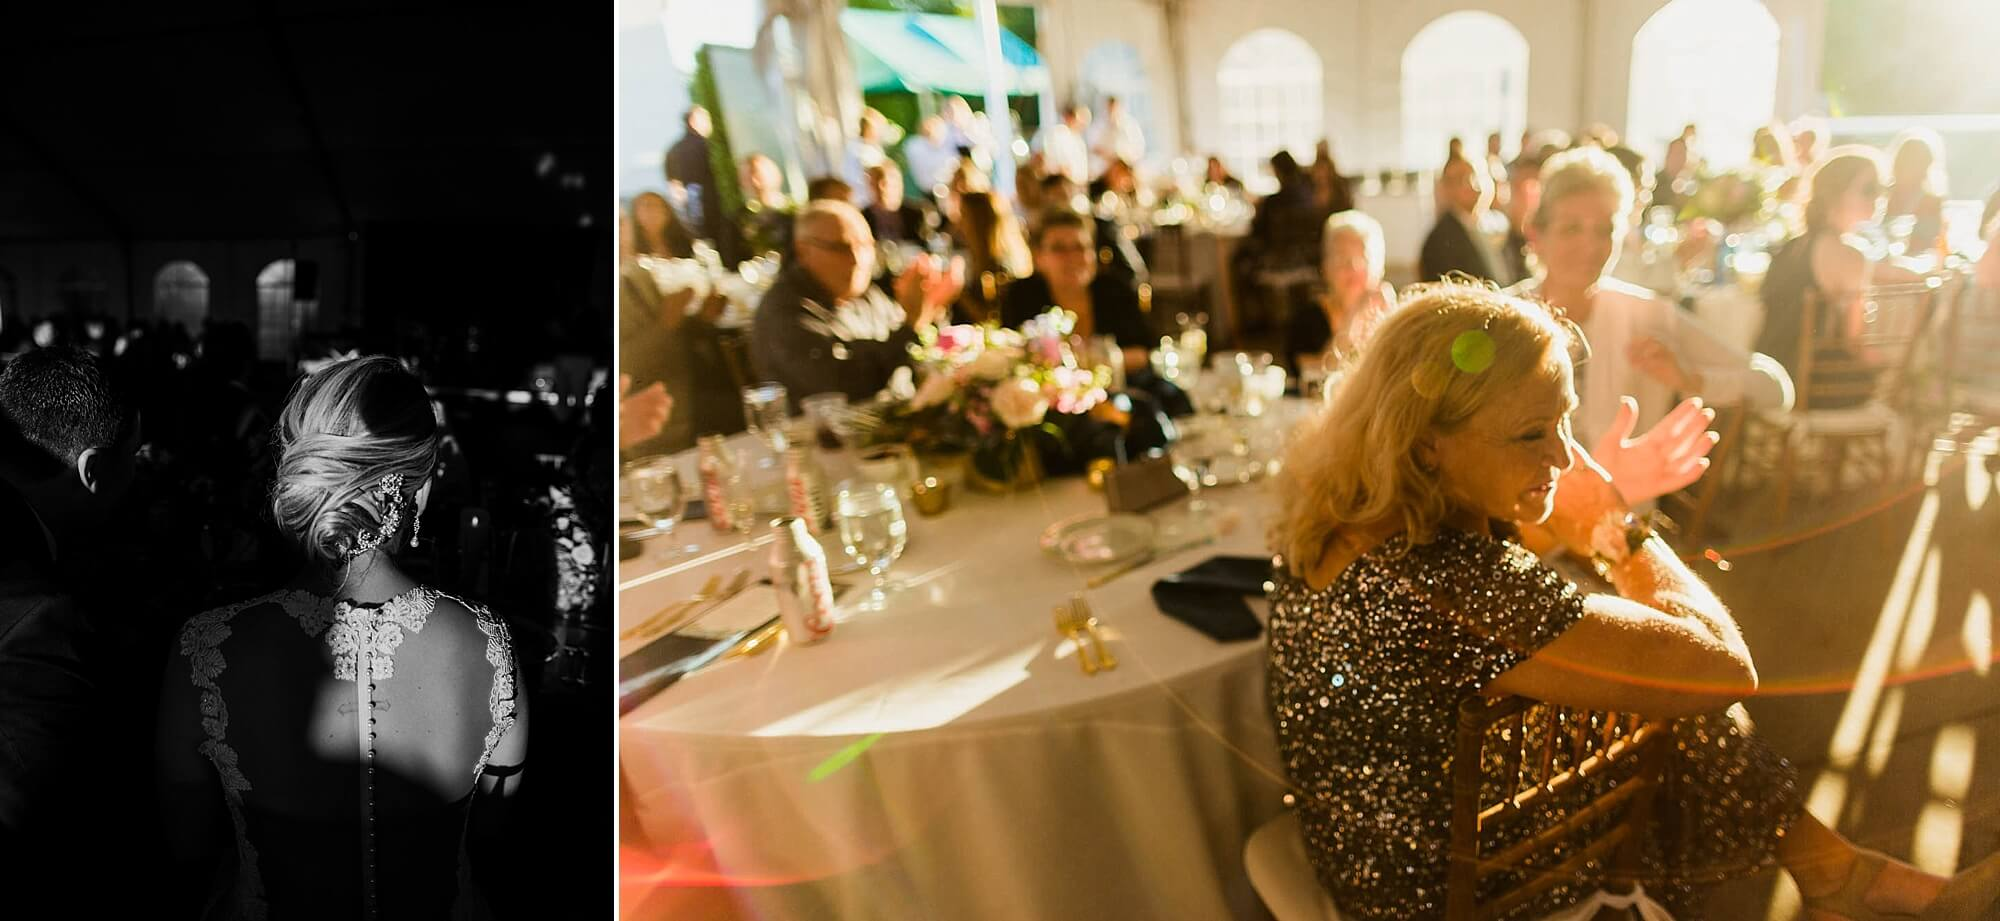 Irish Cultural Center Wedding-85.jpg